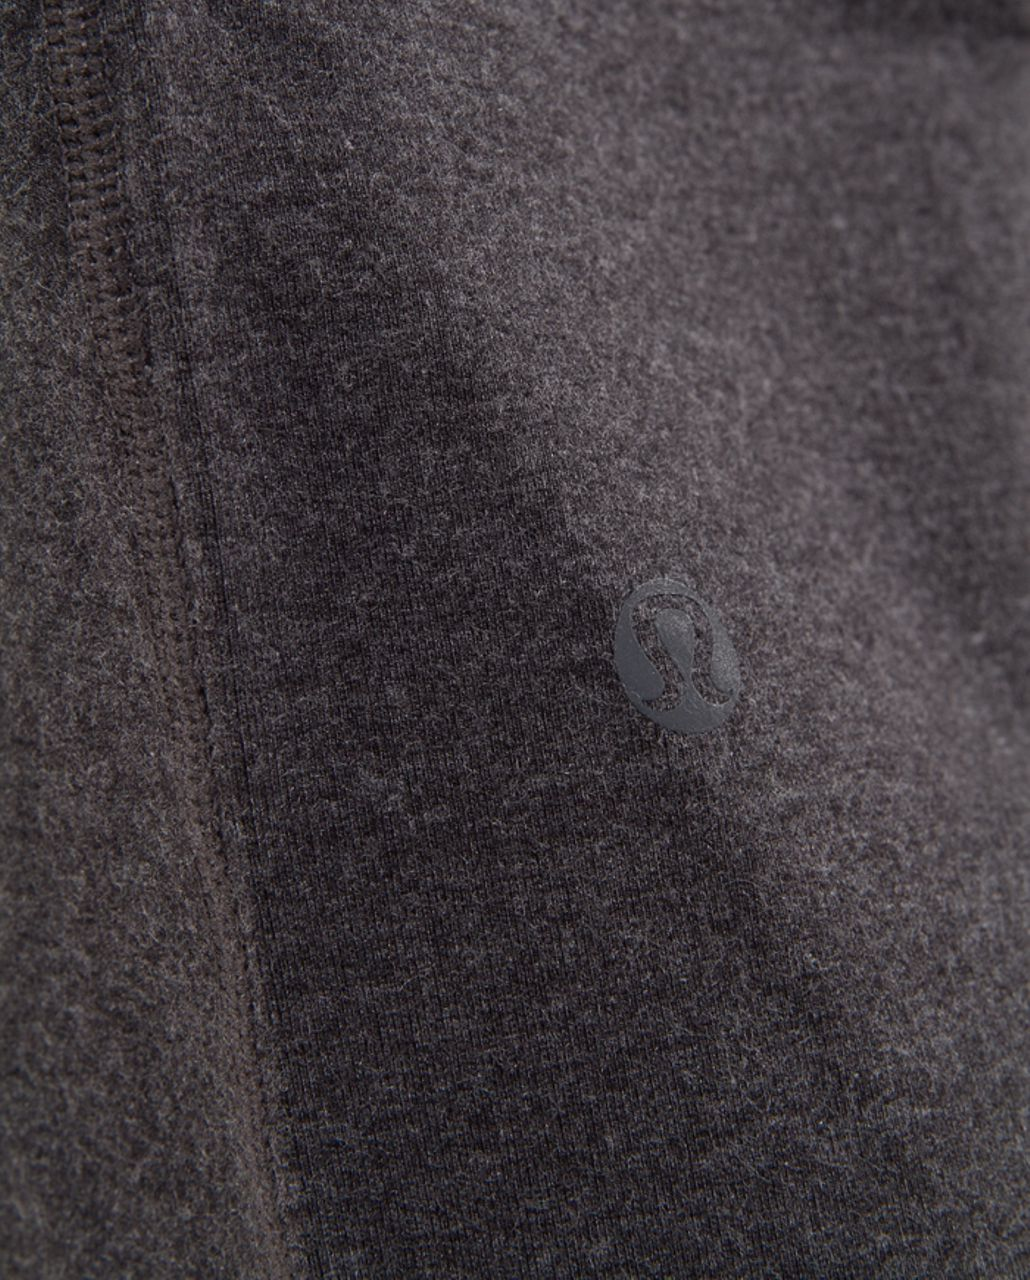 Lululemon Relaxed Fit Crop *Modal - Heathered Charcoal Modal